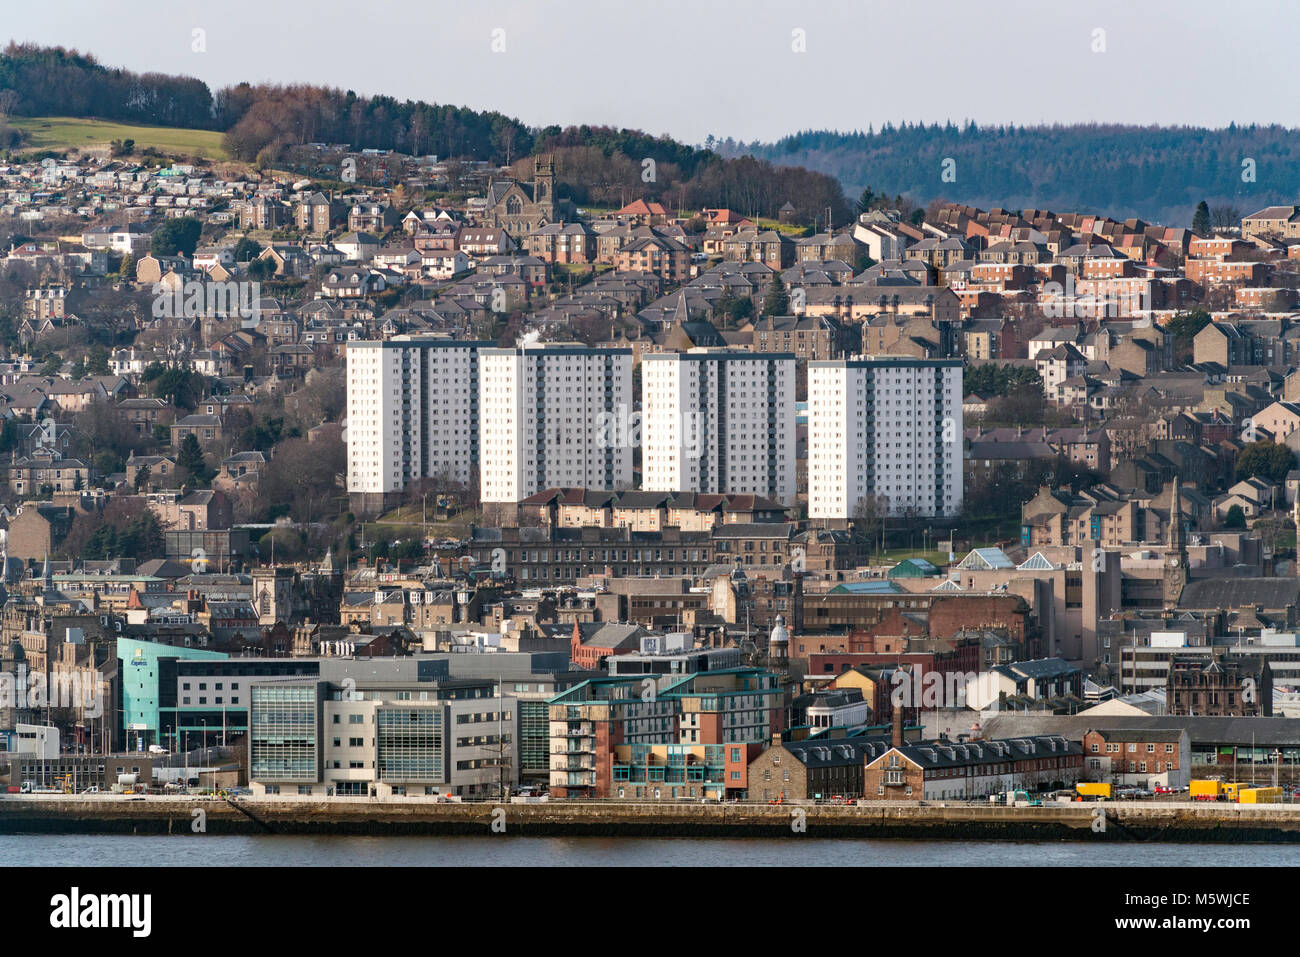 View over city of Dundee in Tayside, Scotland, United Kingdom - Stock Image